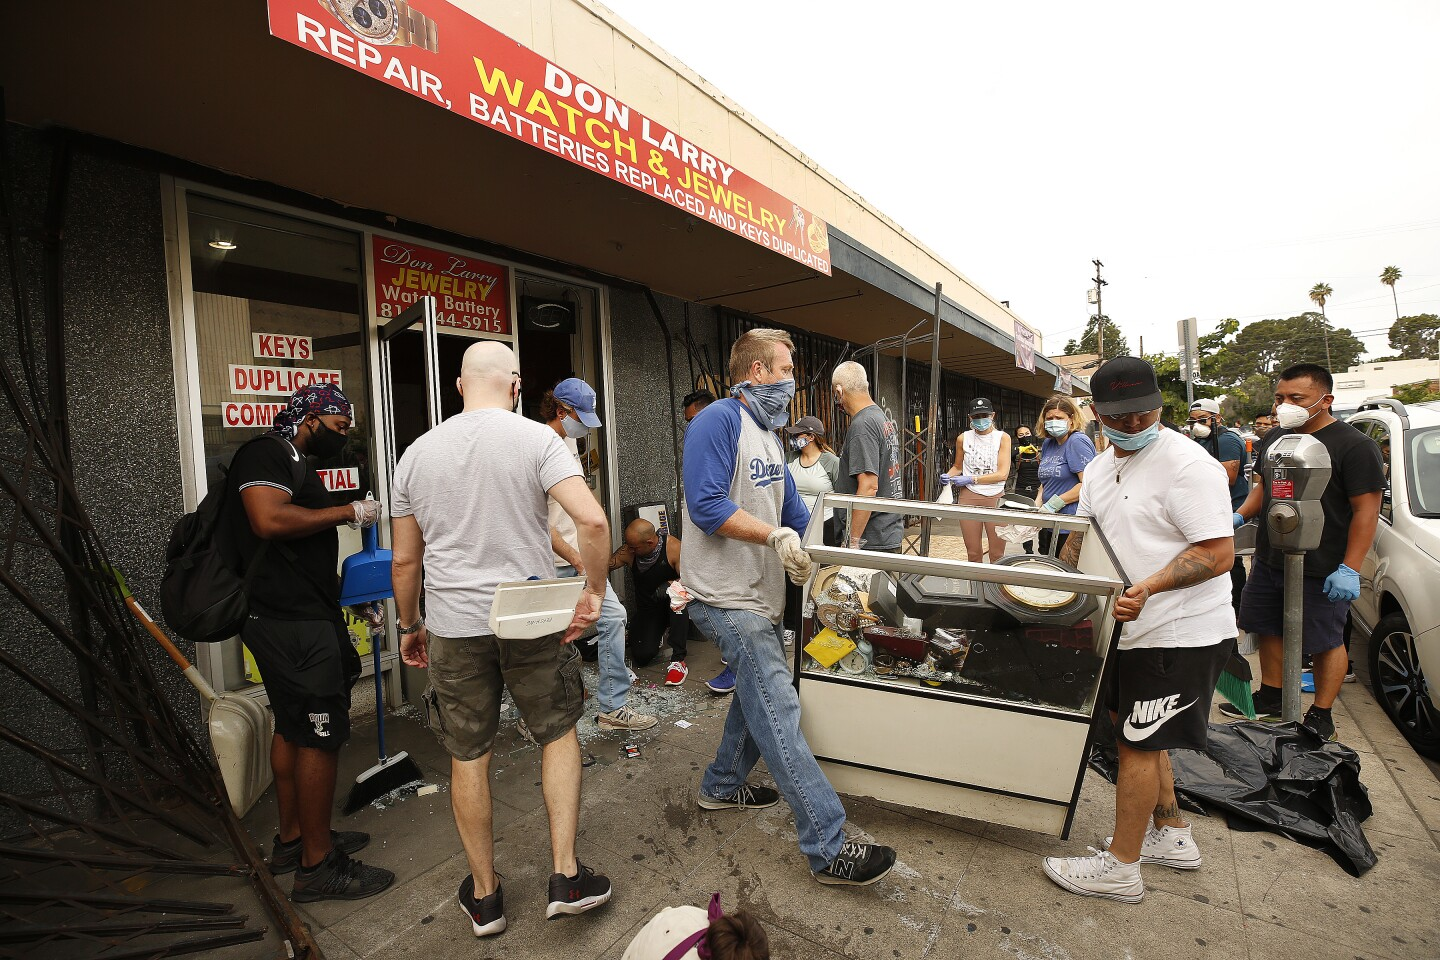 VAN NUYS, CA - JUNE 02: Volunteers work to sort through cases of jewelry inventory in the Don Larry Watch & Jewelry Repair store on Hamlin Street just off Van Nuys Blvd. People roamed the Van Nuys shopping district Tuesday morning to clean up and remove debris in the aftermath of the protest and looting of businesses along Van Nuys Blvd as numerous stores were attacked and at least one set on fire. Protestors again gathered in the midst of the coronavirus outbreak to protest the death of George Floyd, an unarmed black man who died last week in police custody after a white Minneapolis police officer pinned him down by his neck for several minutes. Van Nuys on Tuesday, June 2, 2020 in Van Nuys, CA. (Al Seib / Los Angeles Times)